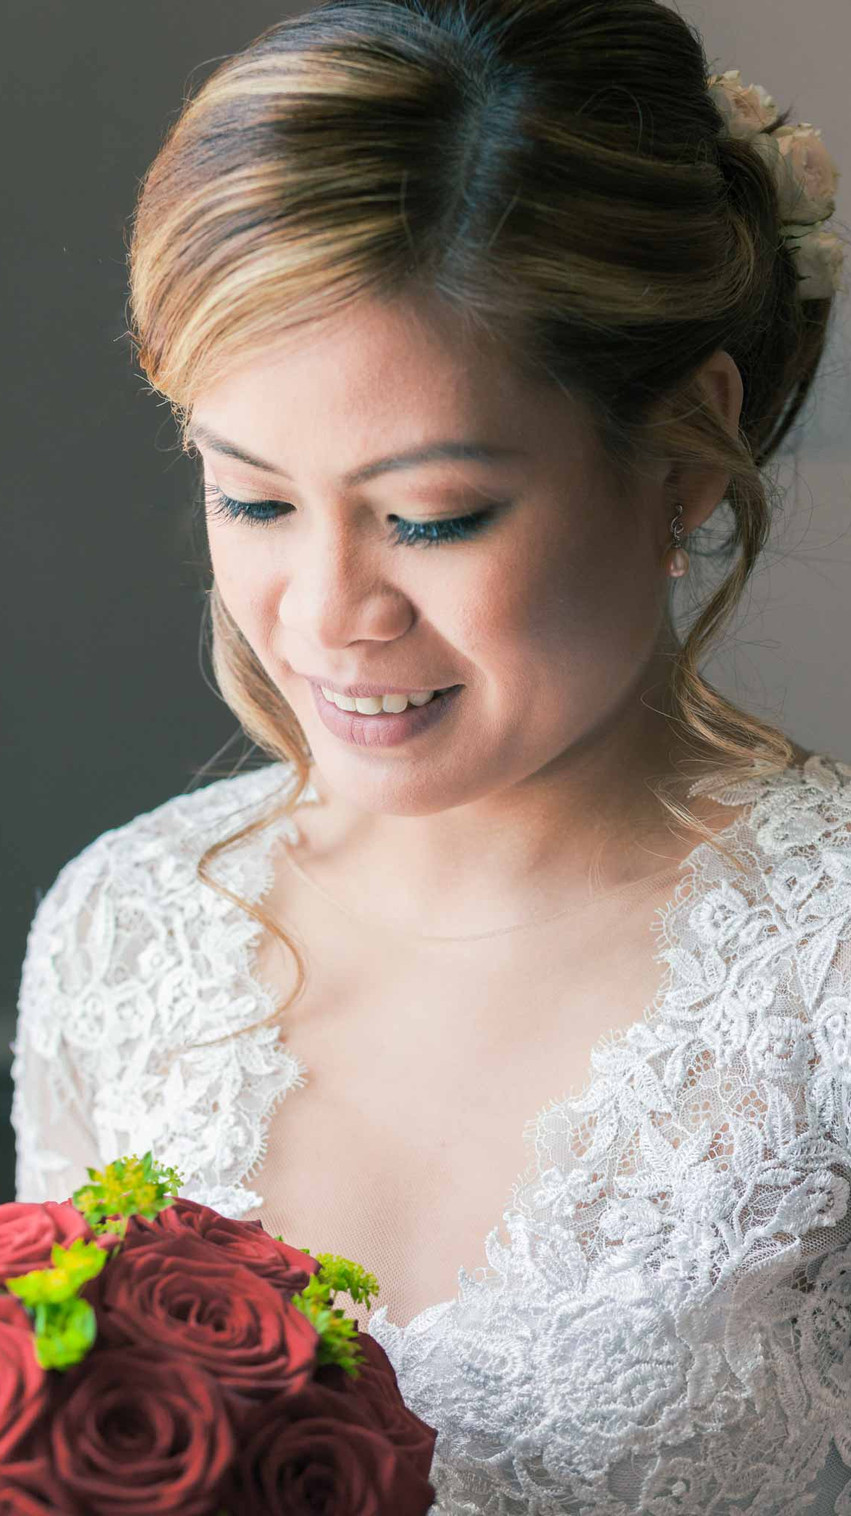 asian bride in a white wedding dress holding her bouquet